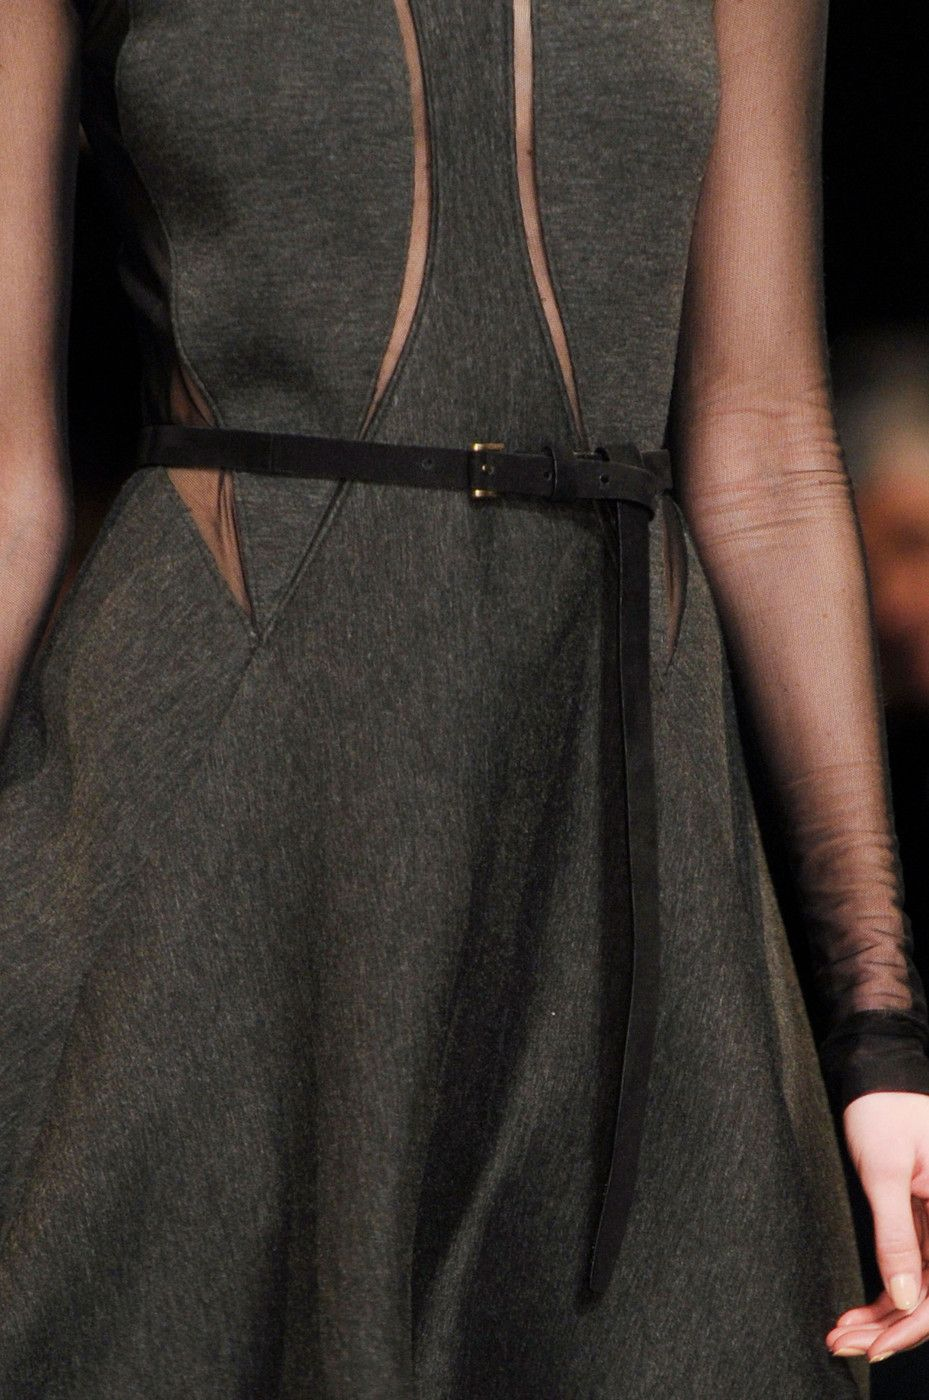 Donna Karan at New York Fashion Week Fall 2014 - StyleBistro